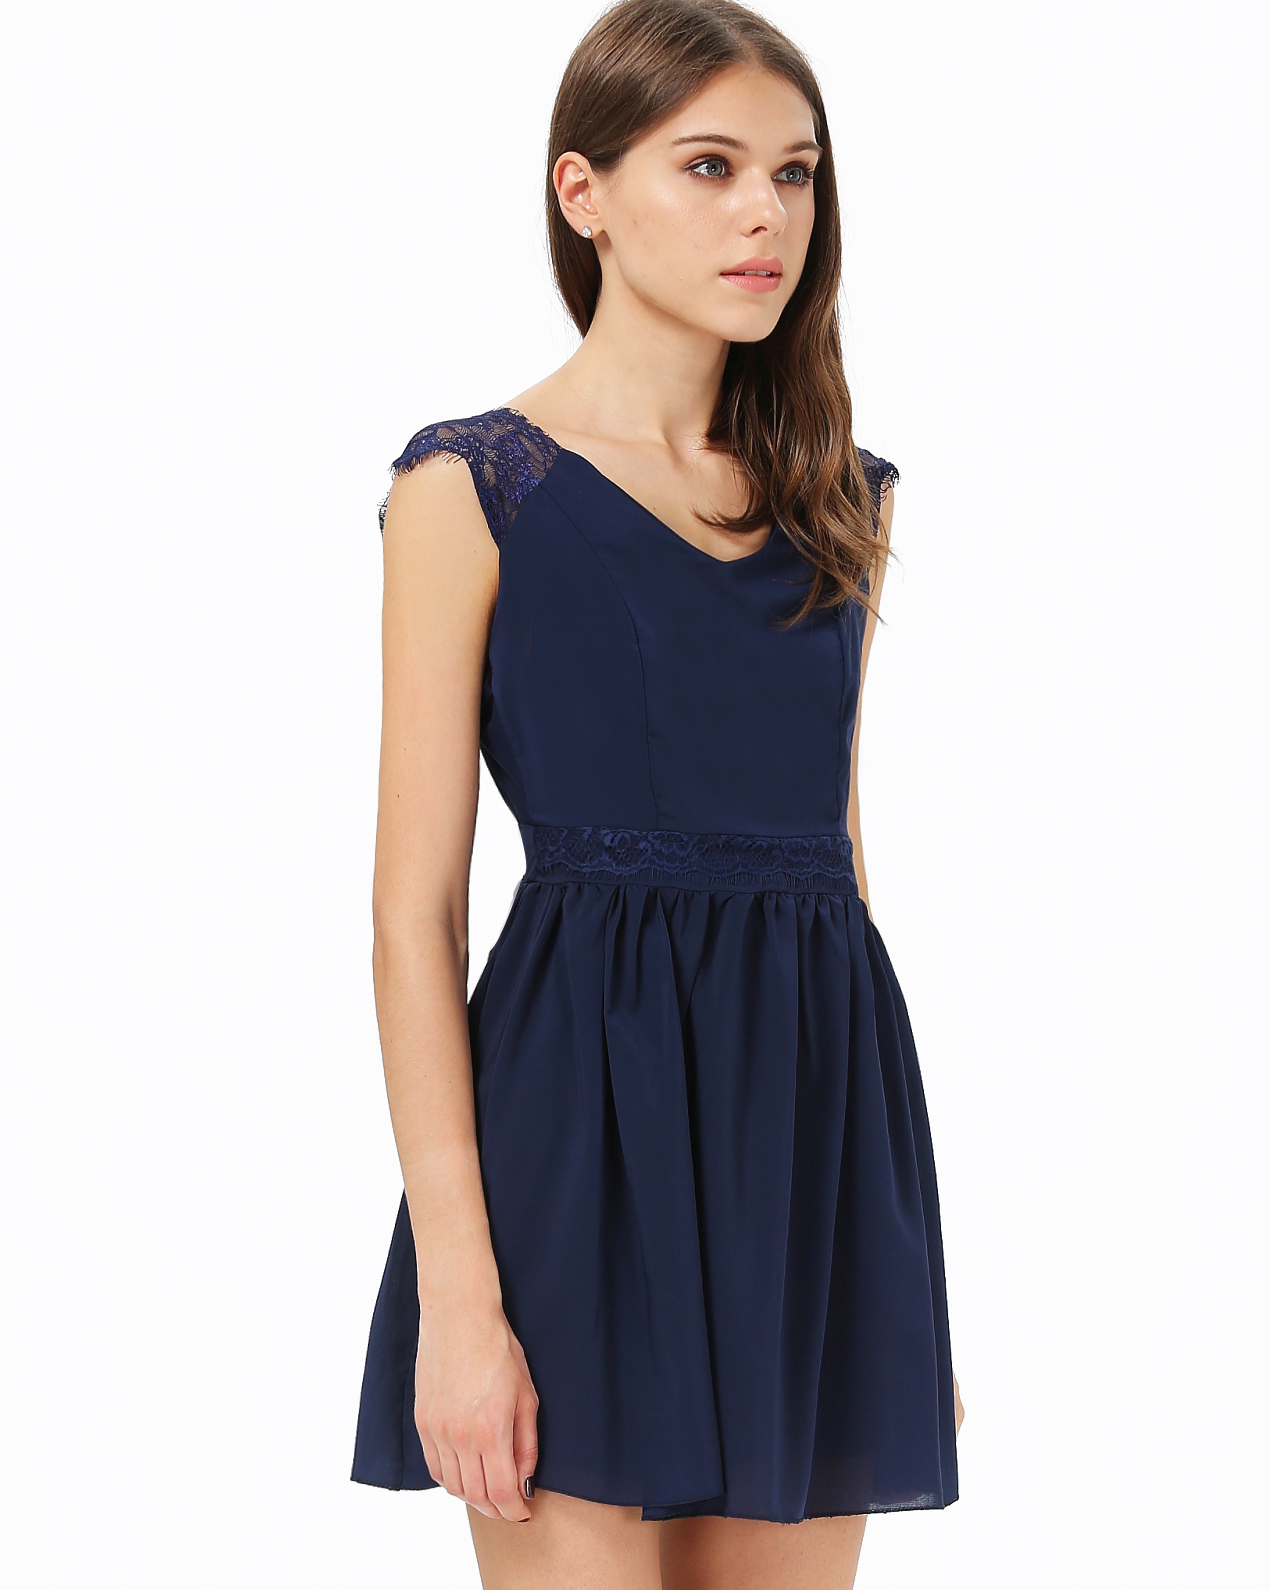 Blue Contrast Lace Backless Chiffon Dress - Sheinside.com